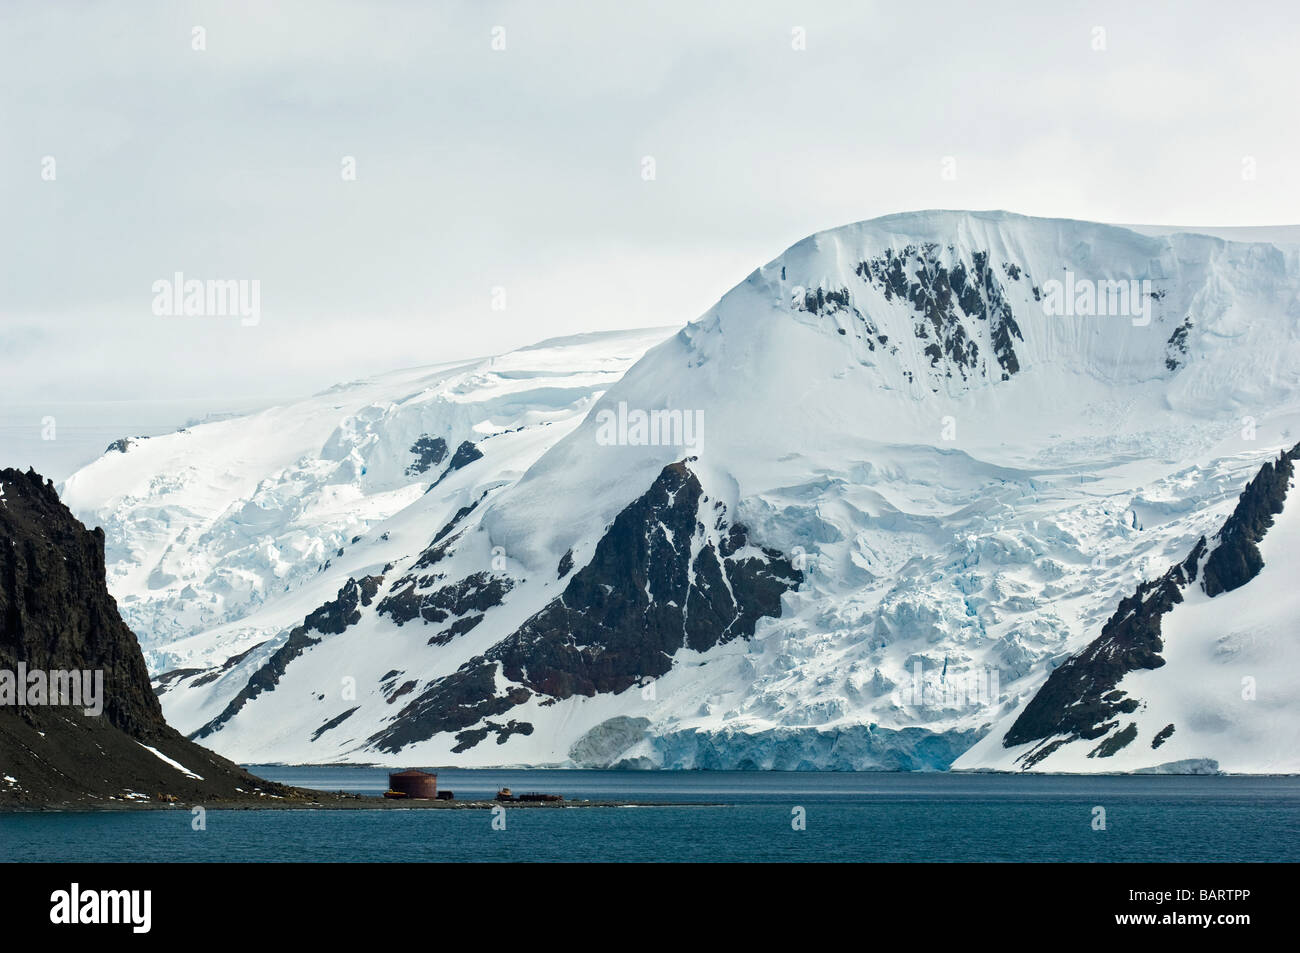 Admiralty Bay surrounded by Mountains and Glaciers. King George Island, South Shetland Islands, Antarctica. Stock Photo